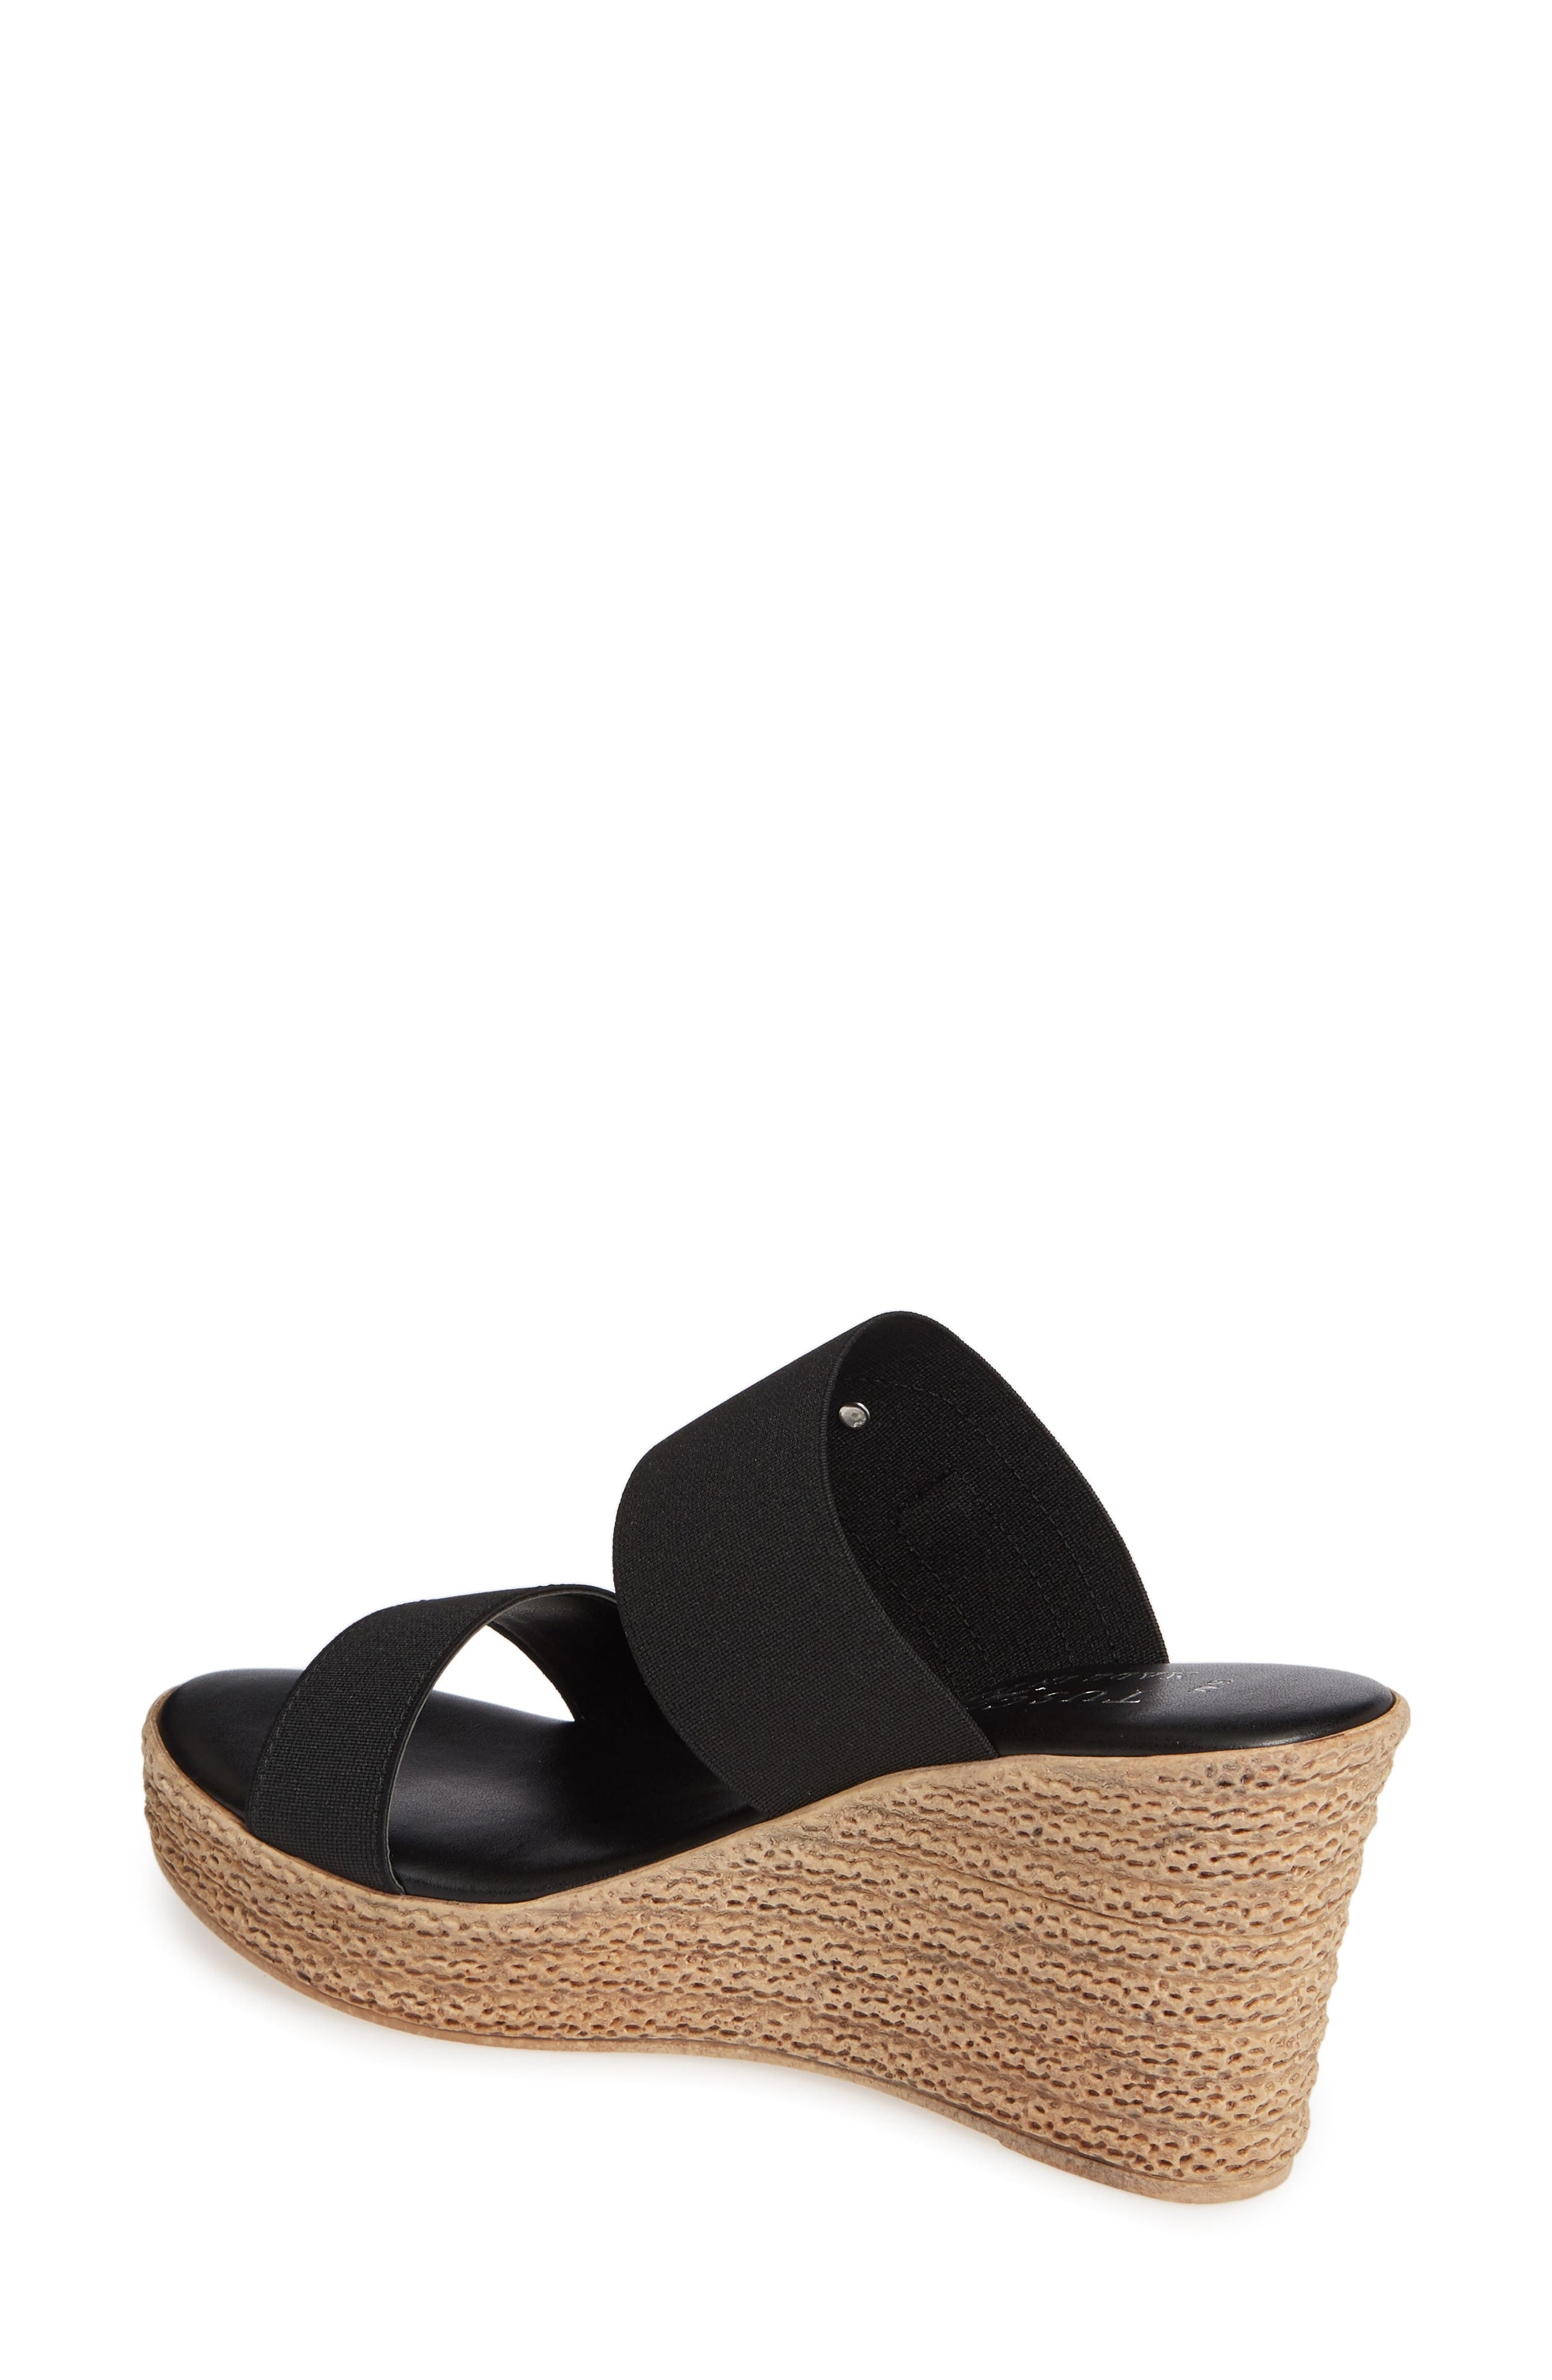 TUSCANY BY EASY STREET<SUP>®</SUP>, Marisole Platform Wedge Sandal, Alternate thumbnail 2, color, BLACK LEATHER